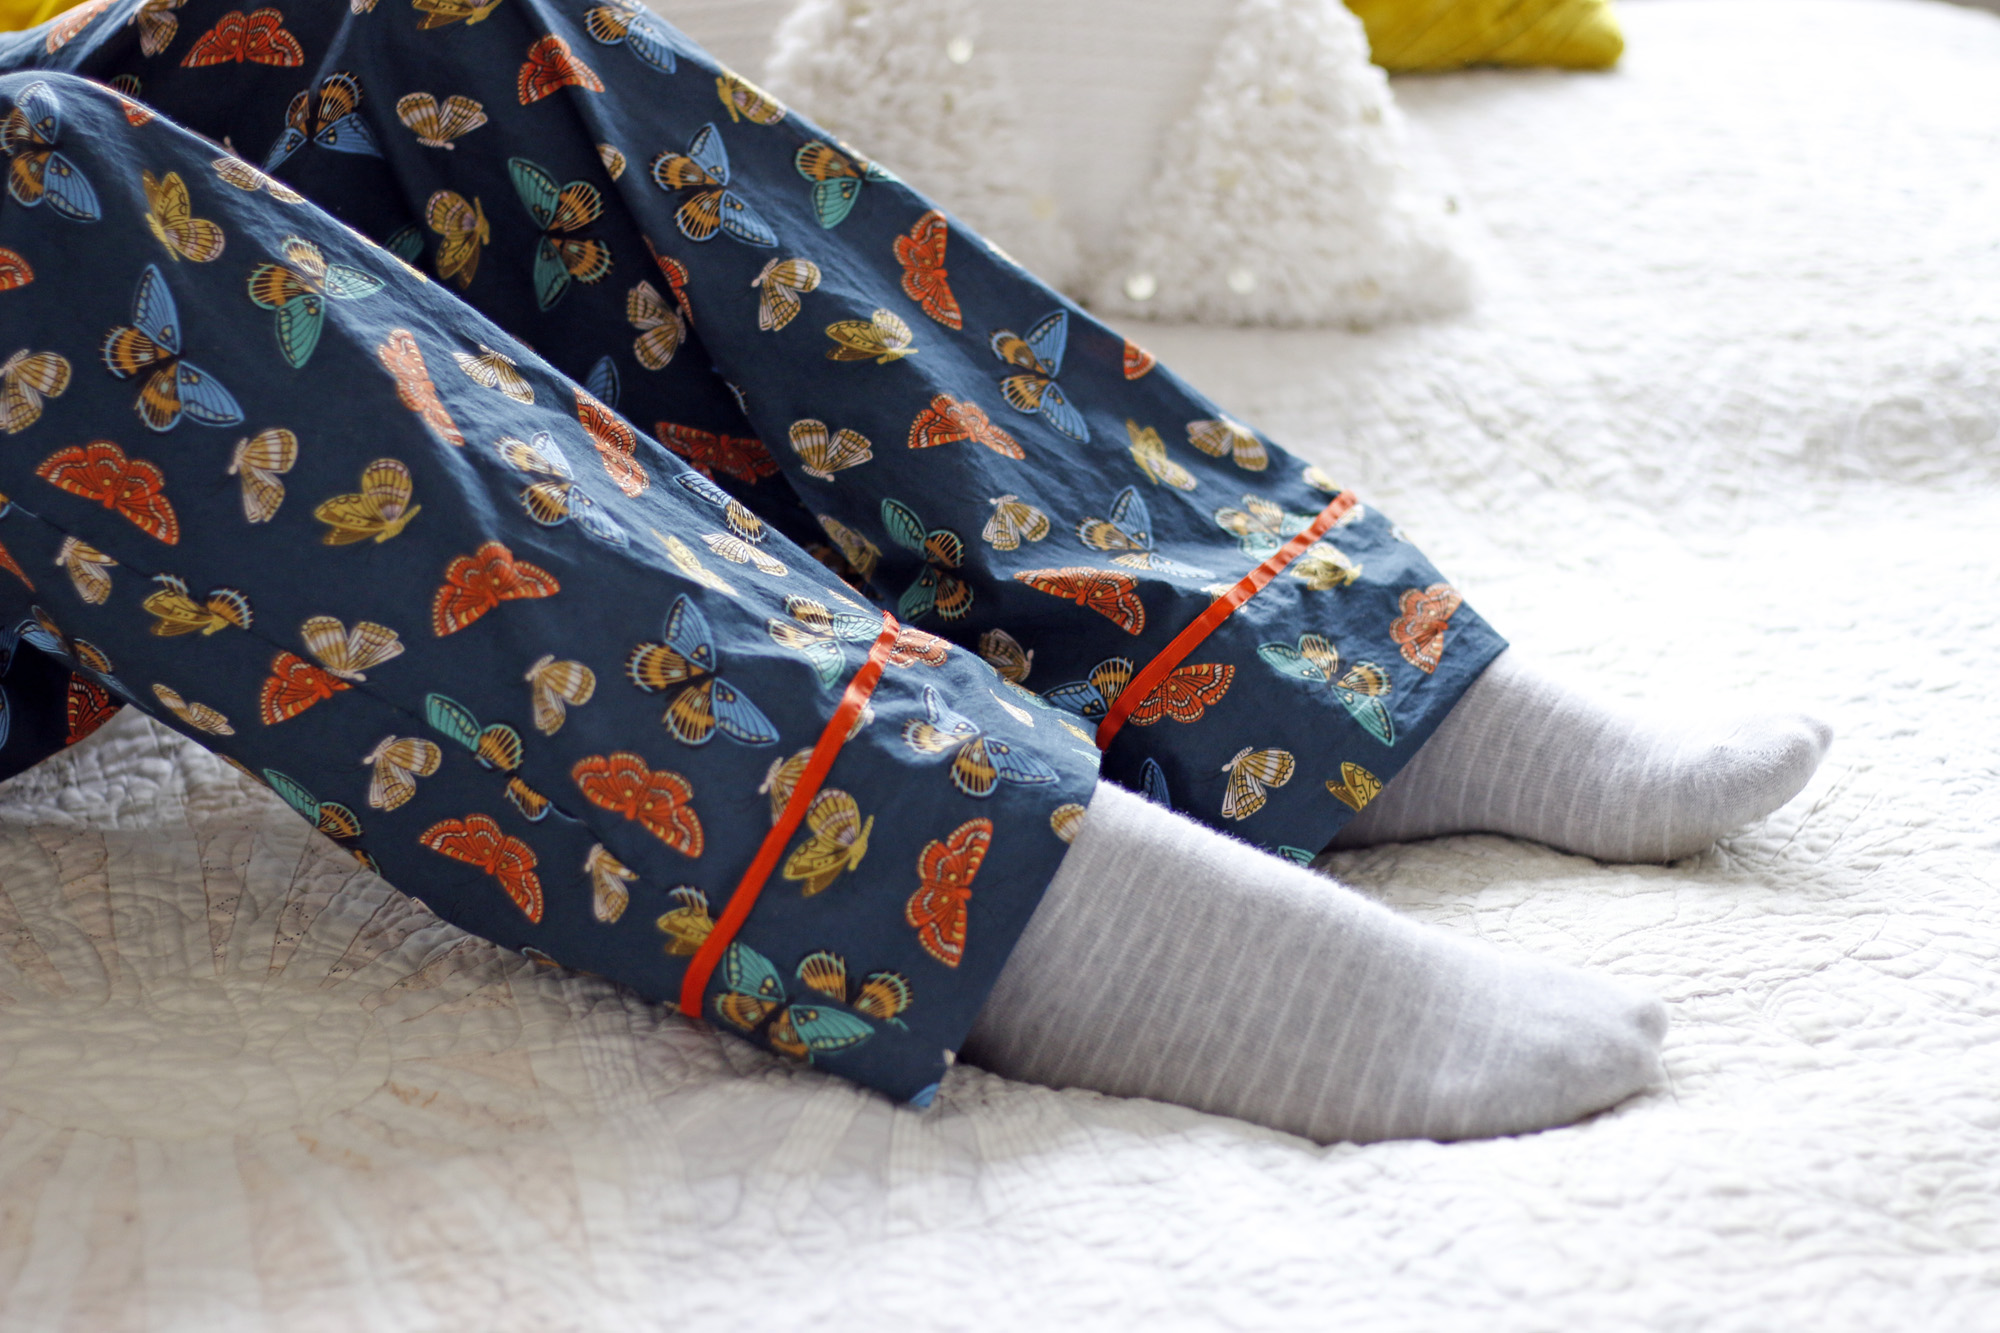 Pj pants close. Stitched in Color.jpg